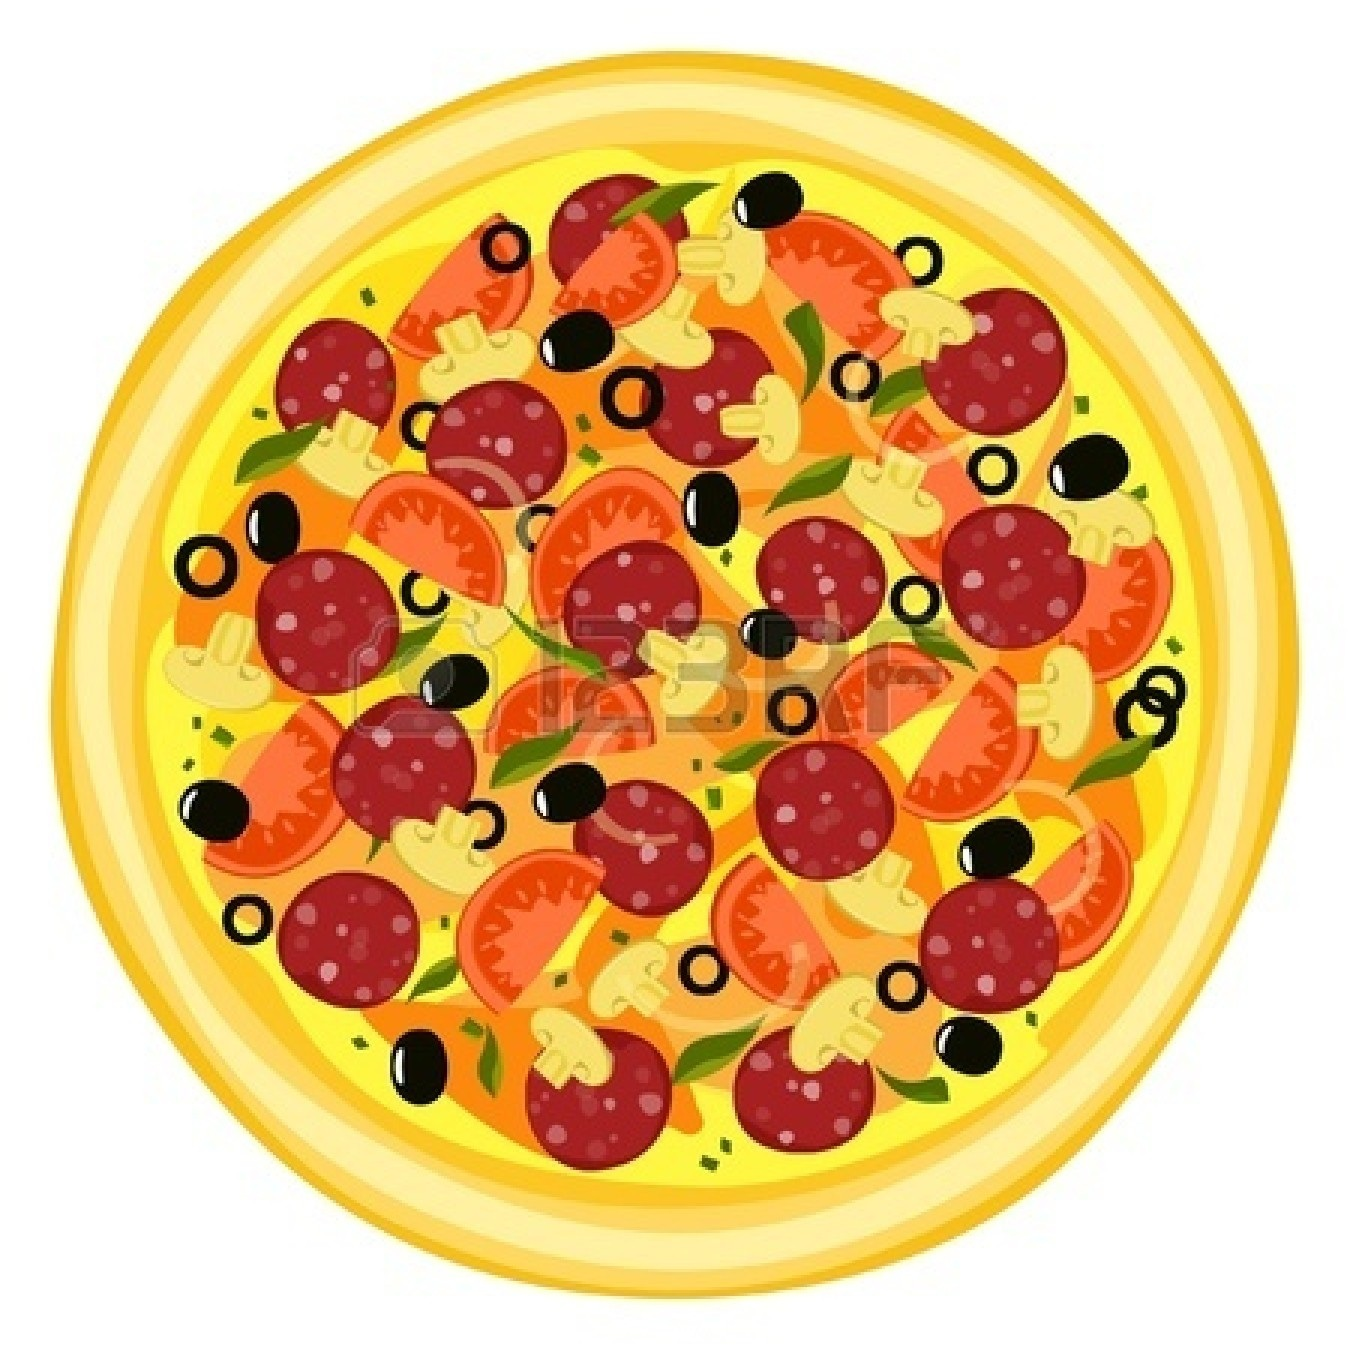 Whole Pepperoni Pizza Clipart Pizza Set Royalty Free Cliparts